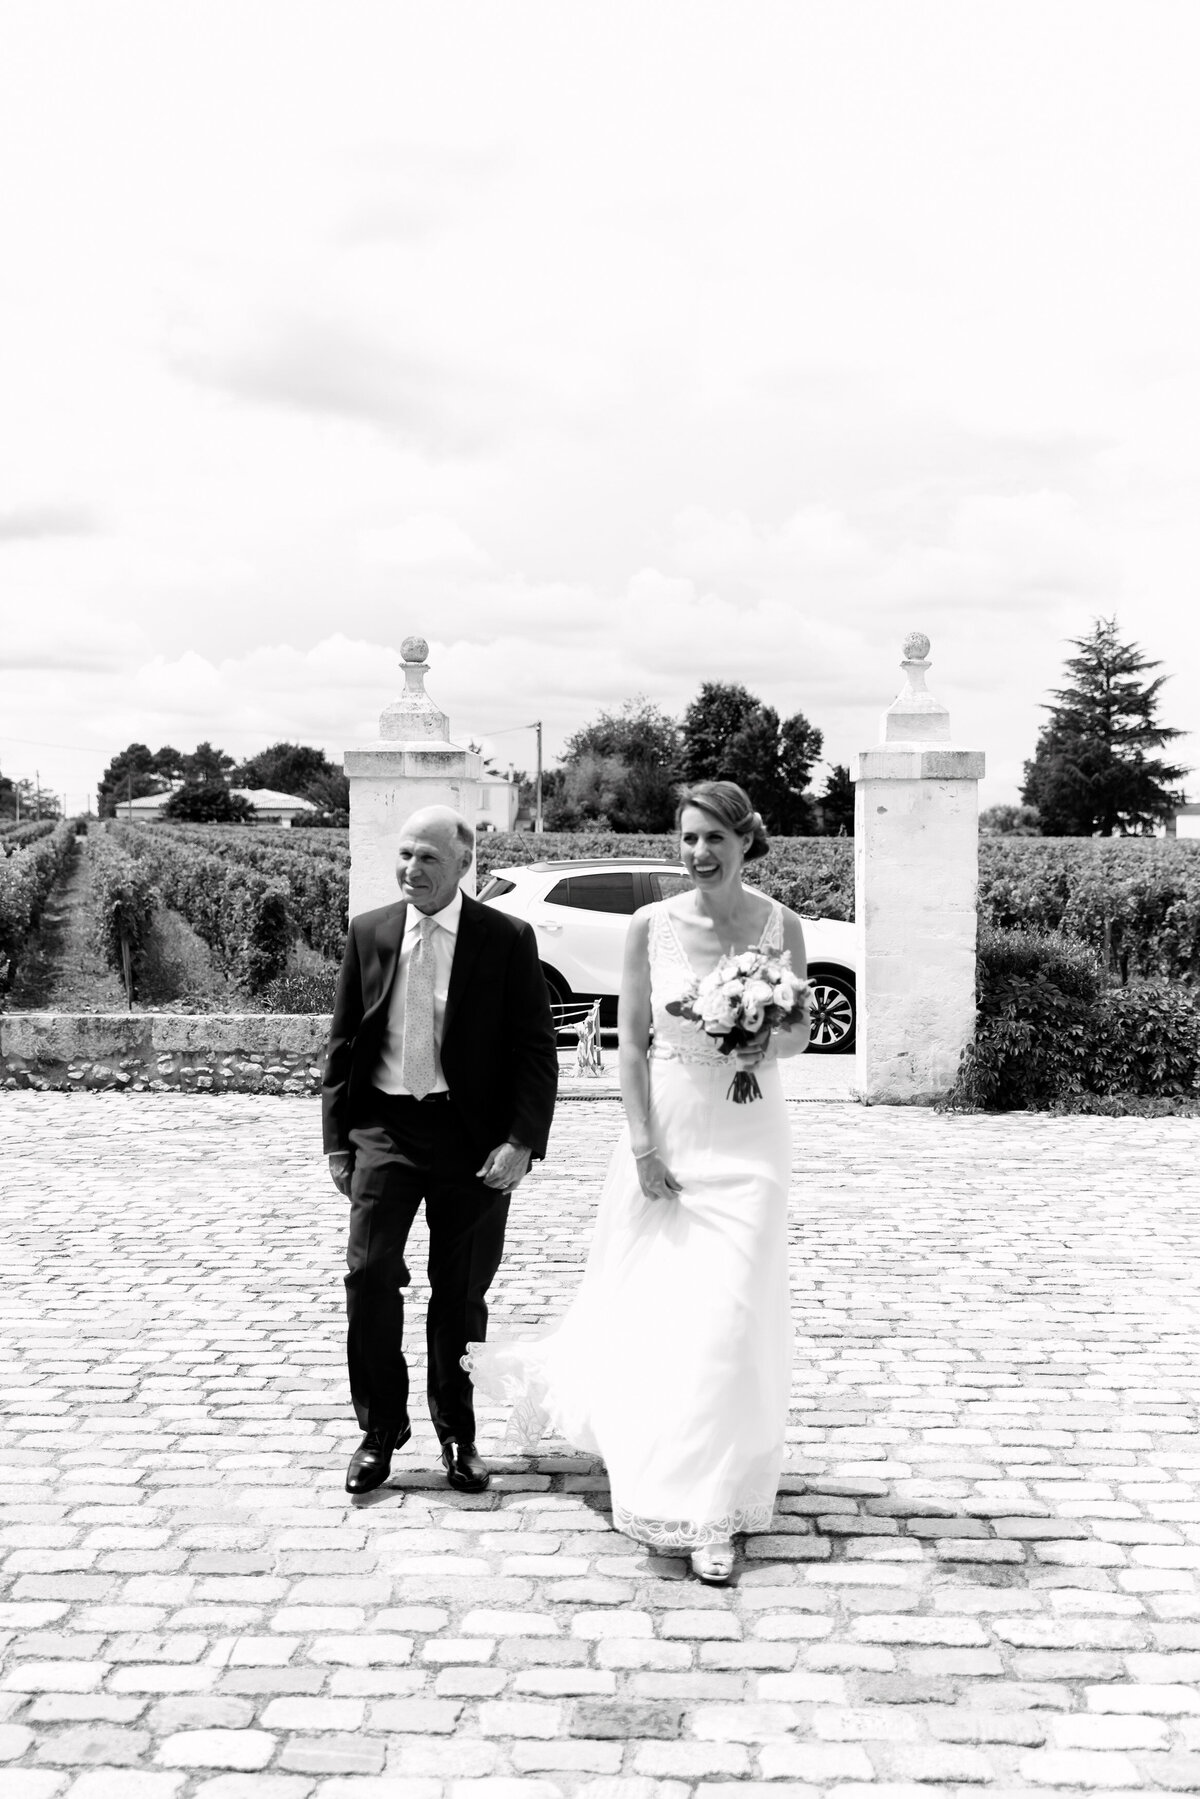 Bordeaux_France_0218_Daina_Olivier_Wedding_1201